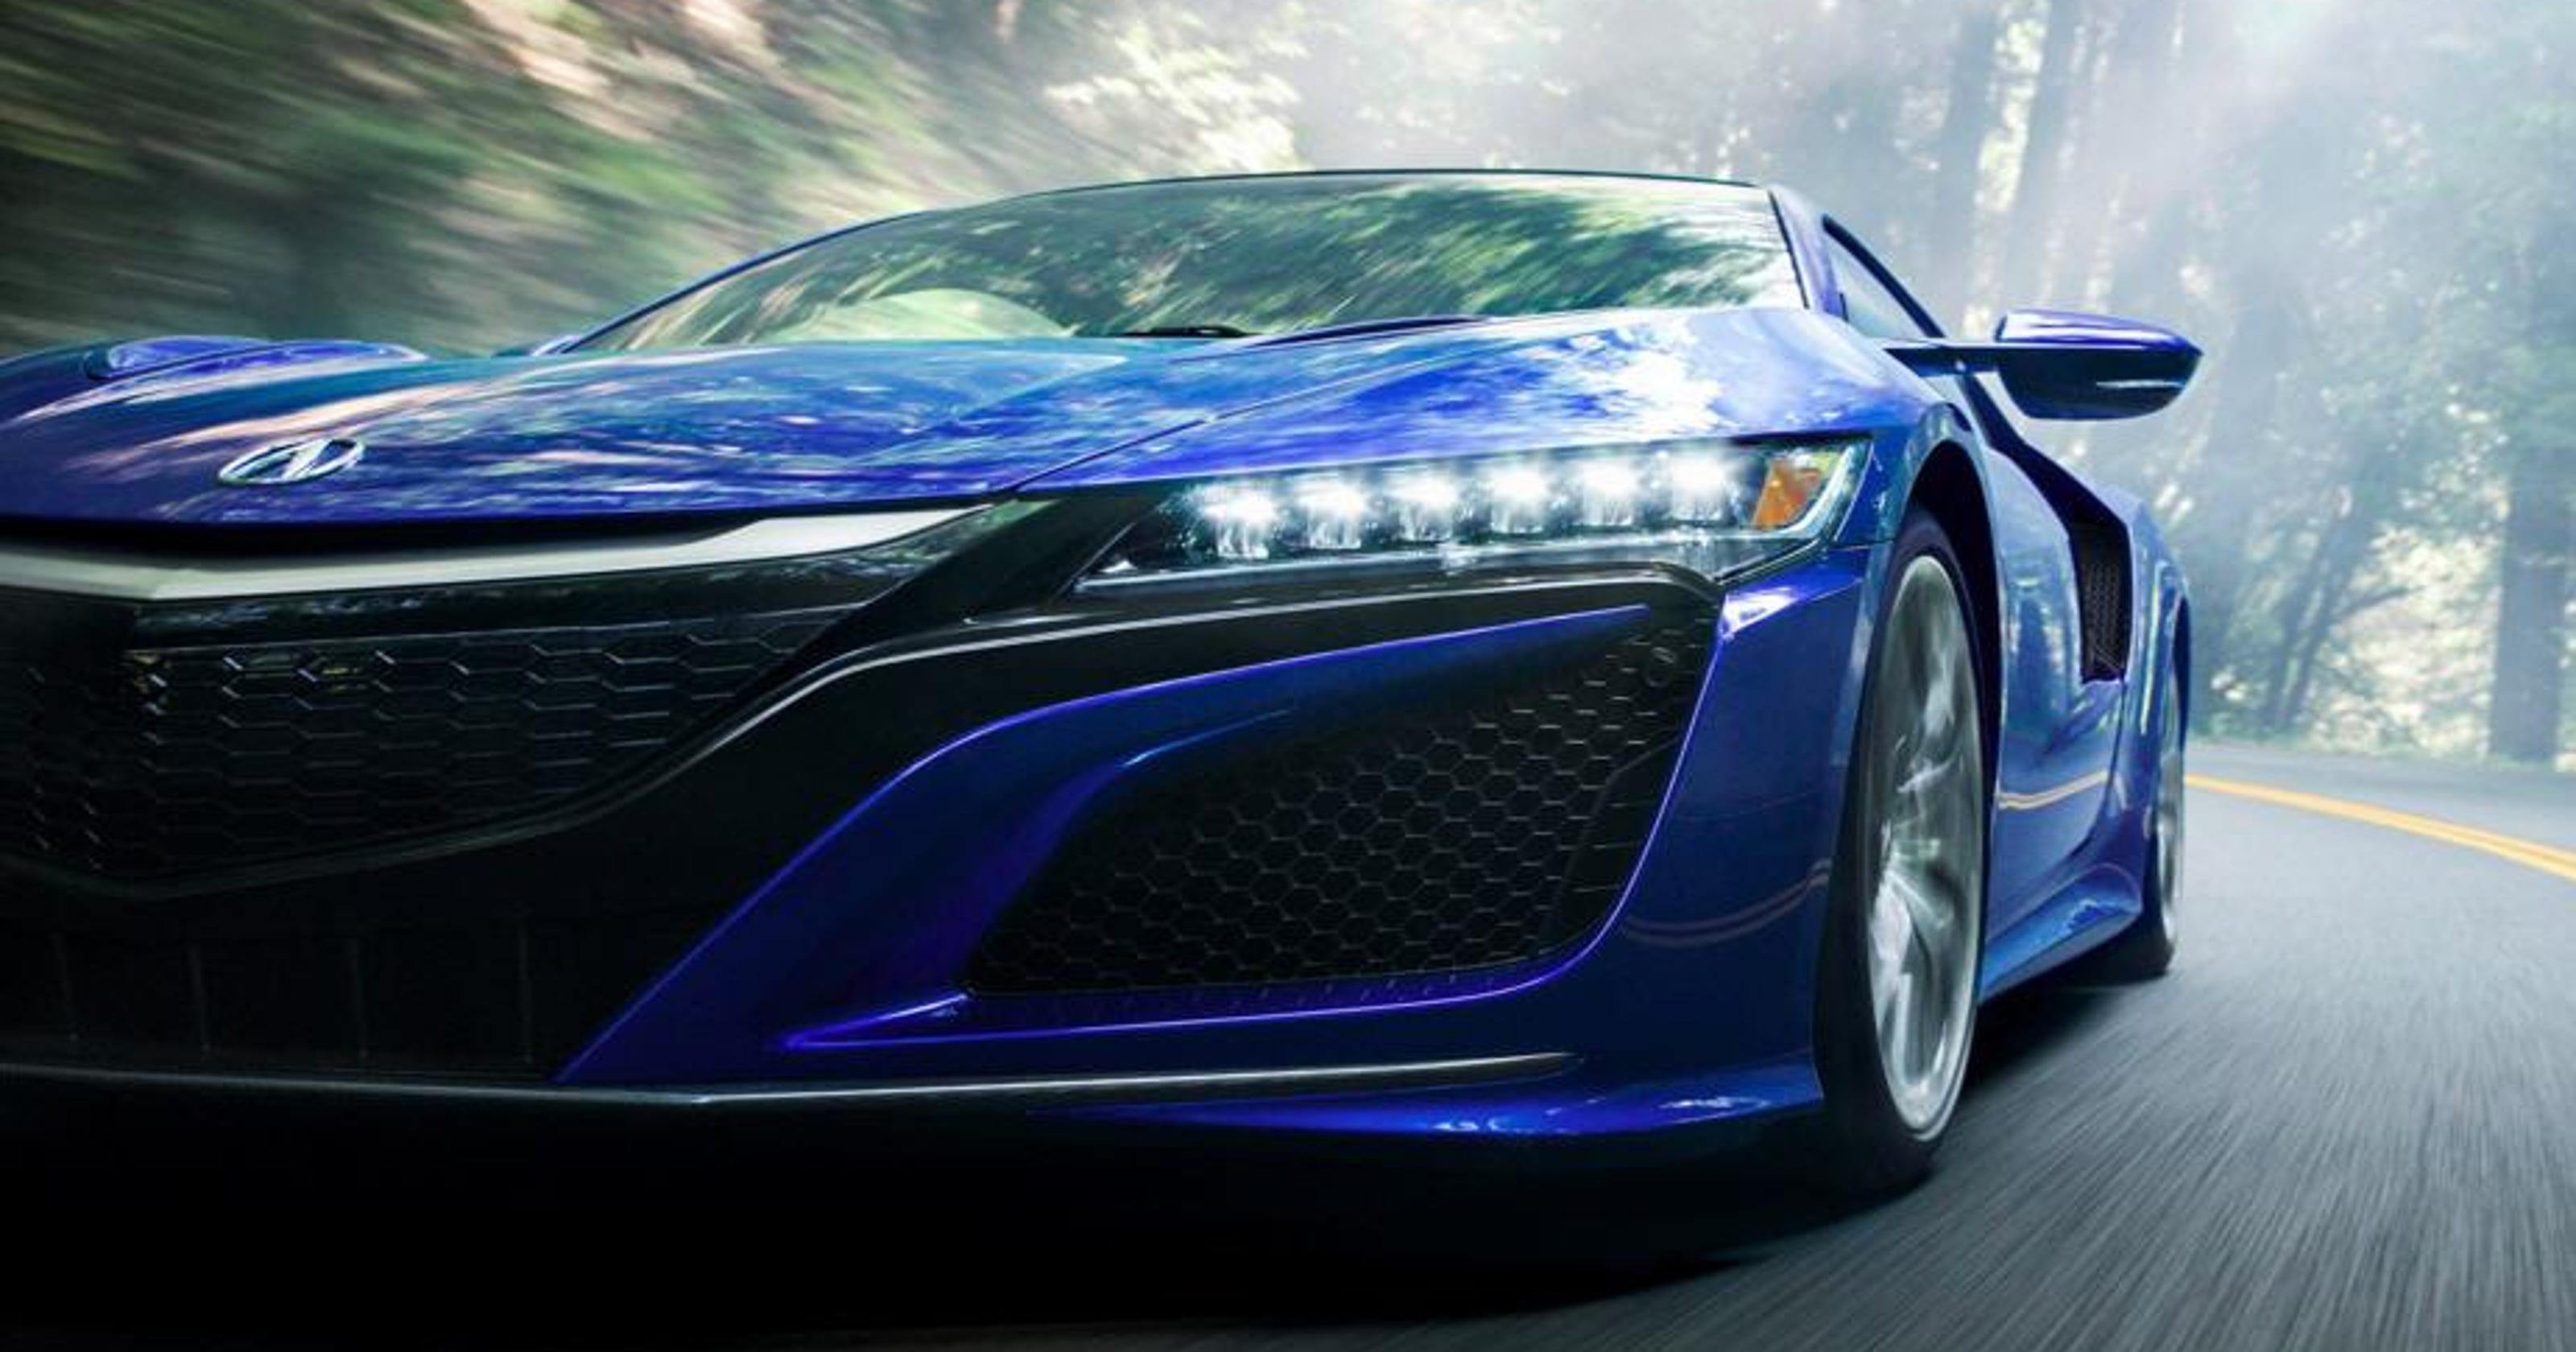 acura nsx supercar priced from $156k